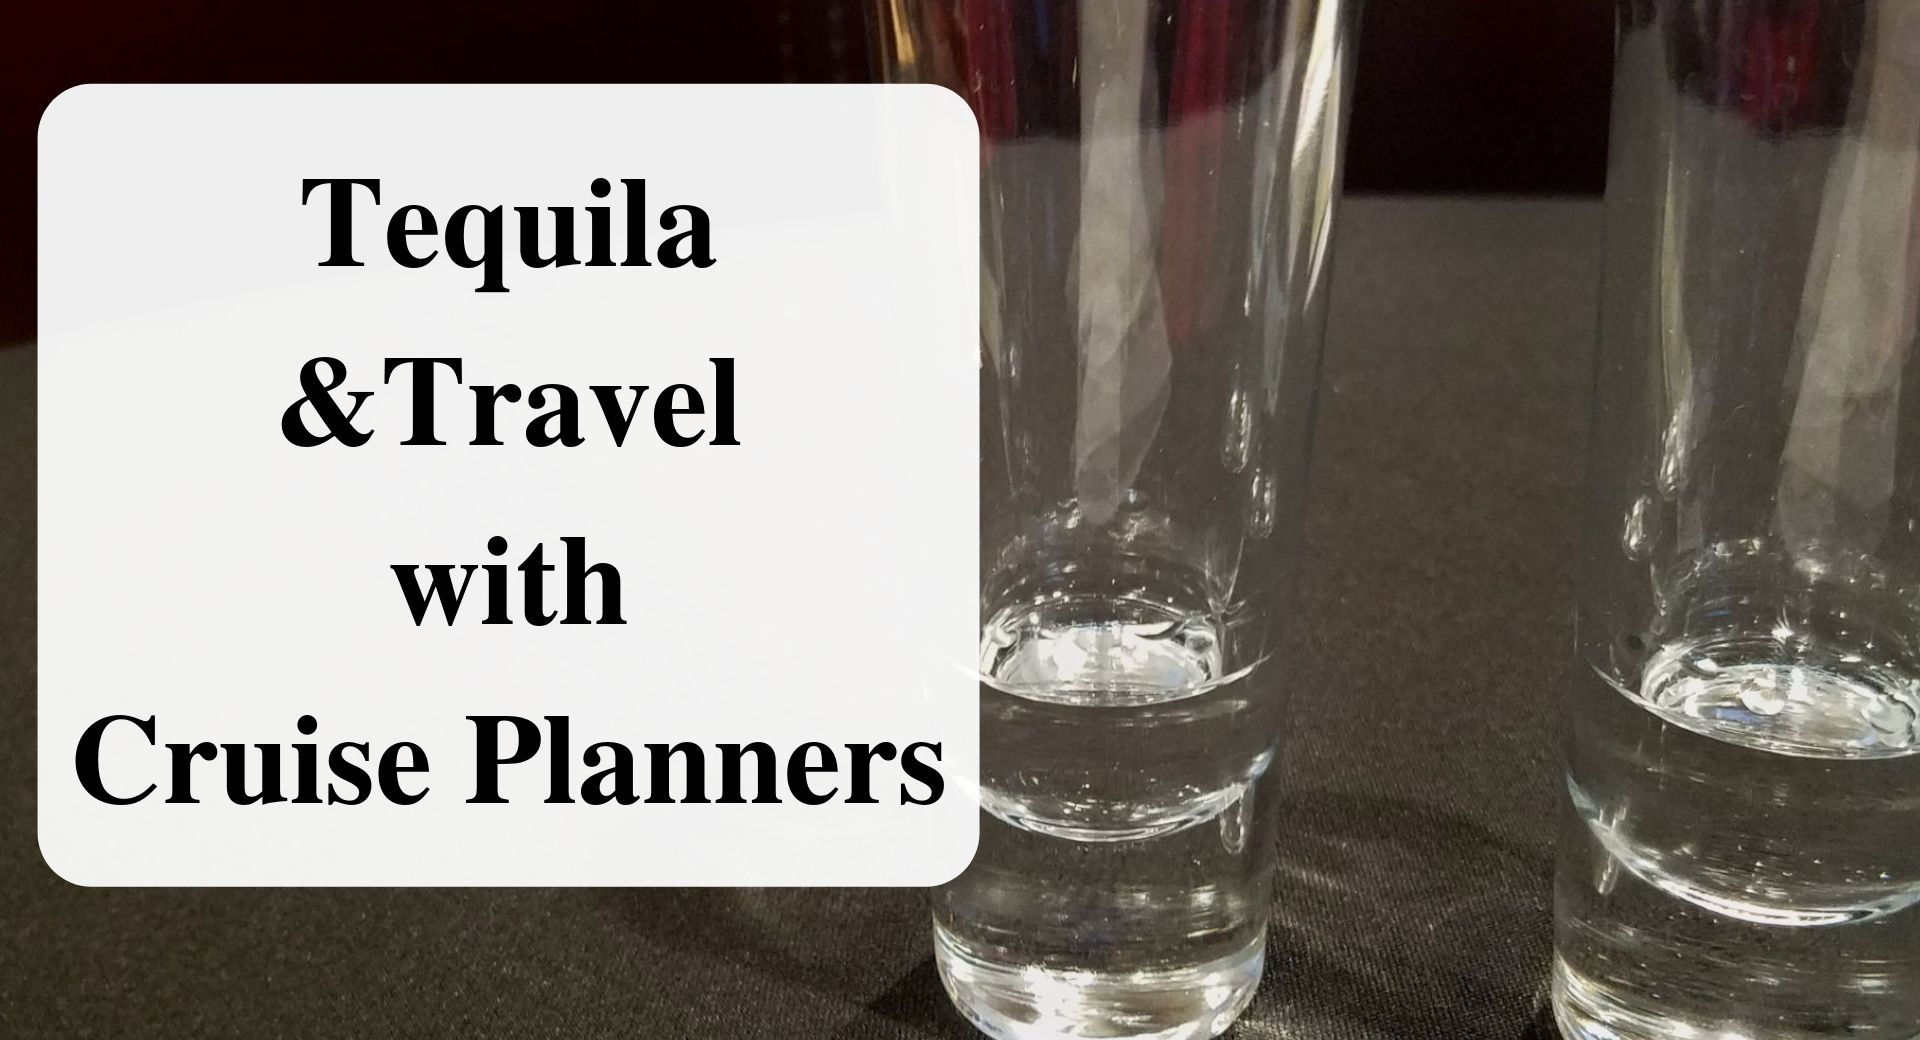 Tequila and Travel with Cruise Planners Forever sabbatical